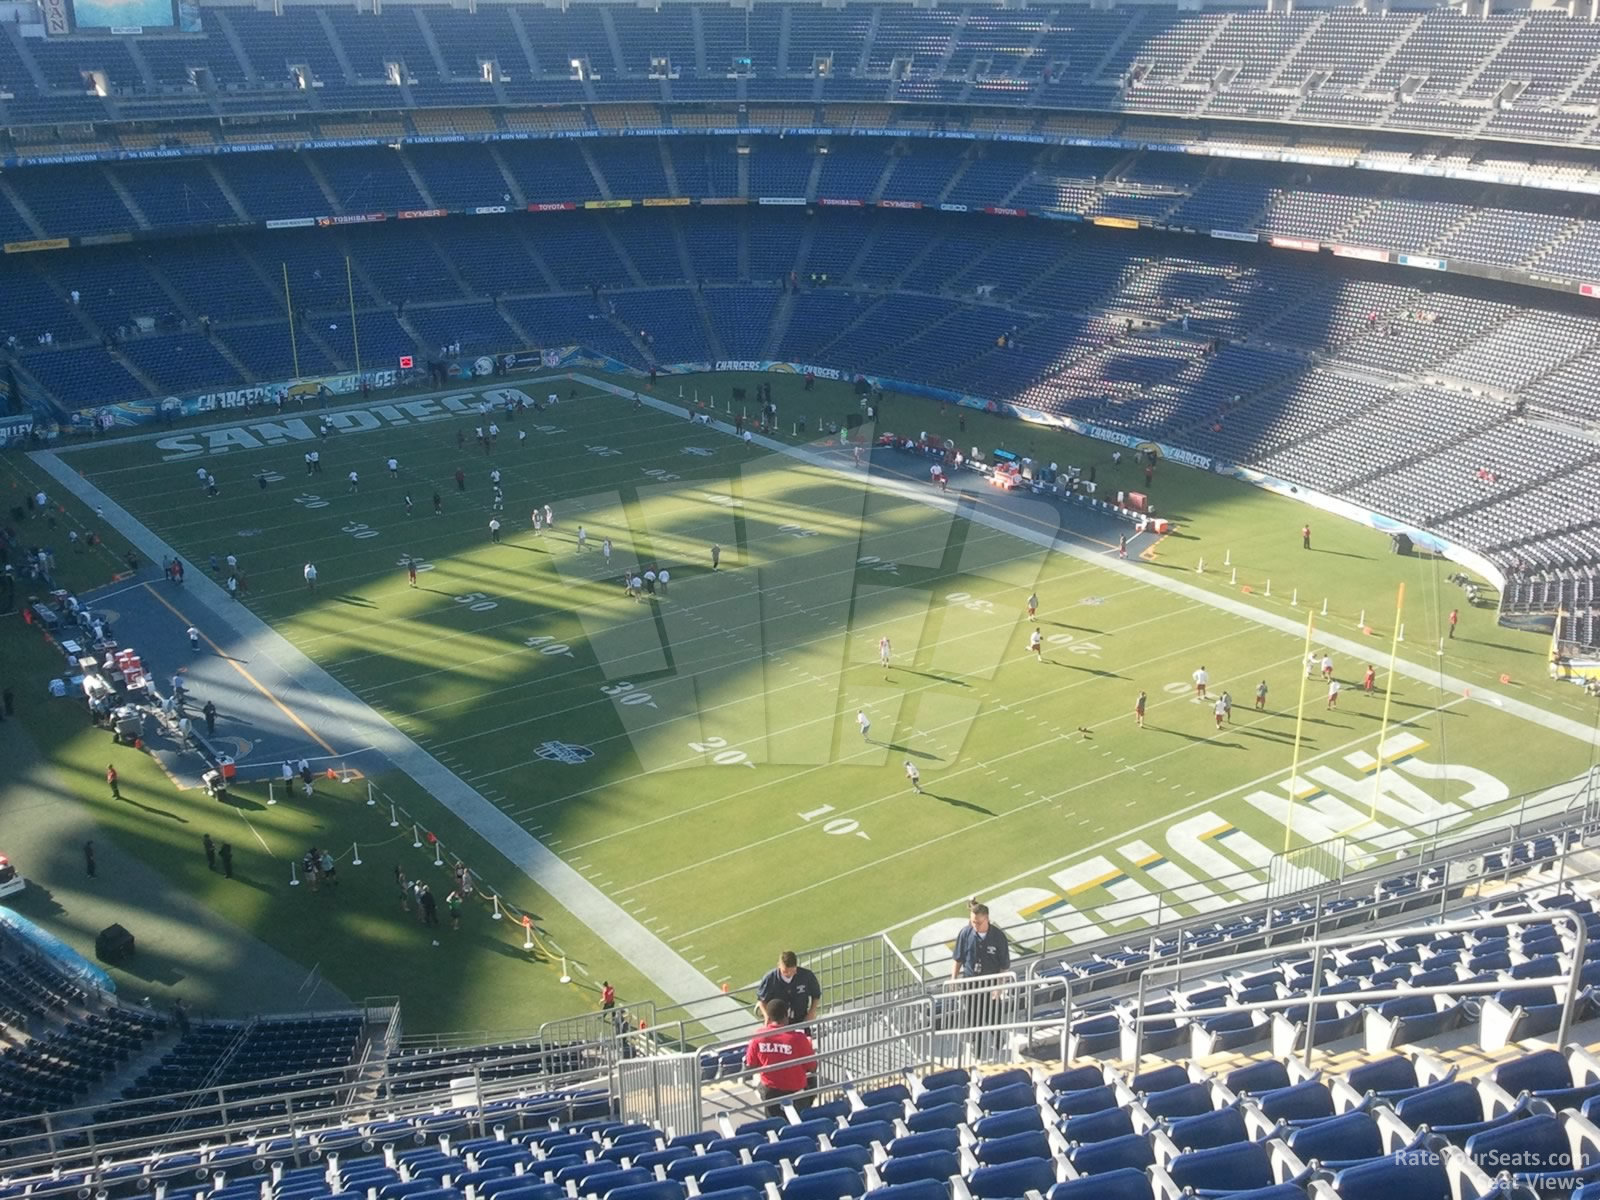 Qualcomm stadium seating pictures Thinking Outside the Box: A Misguided Idea Psychology Today